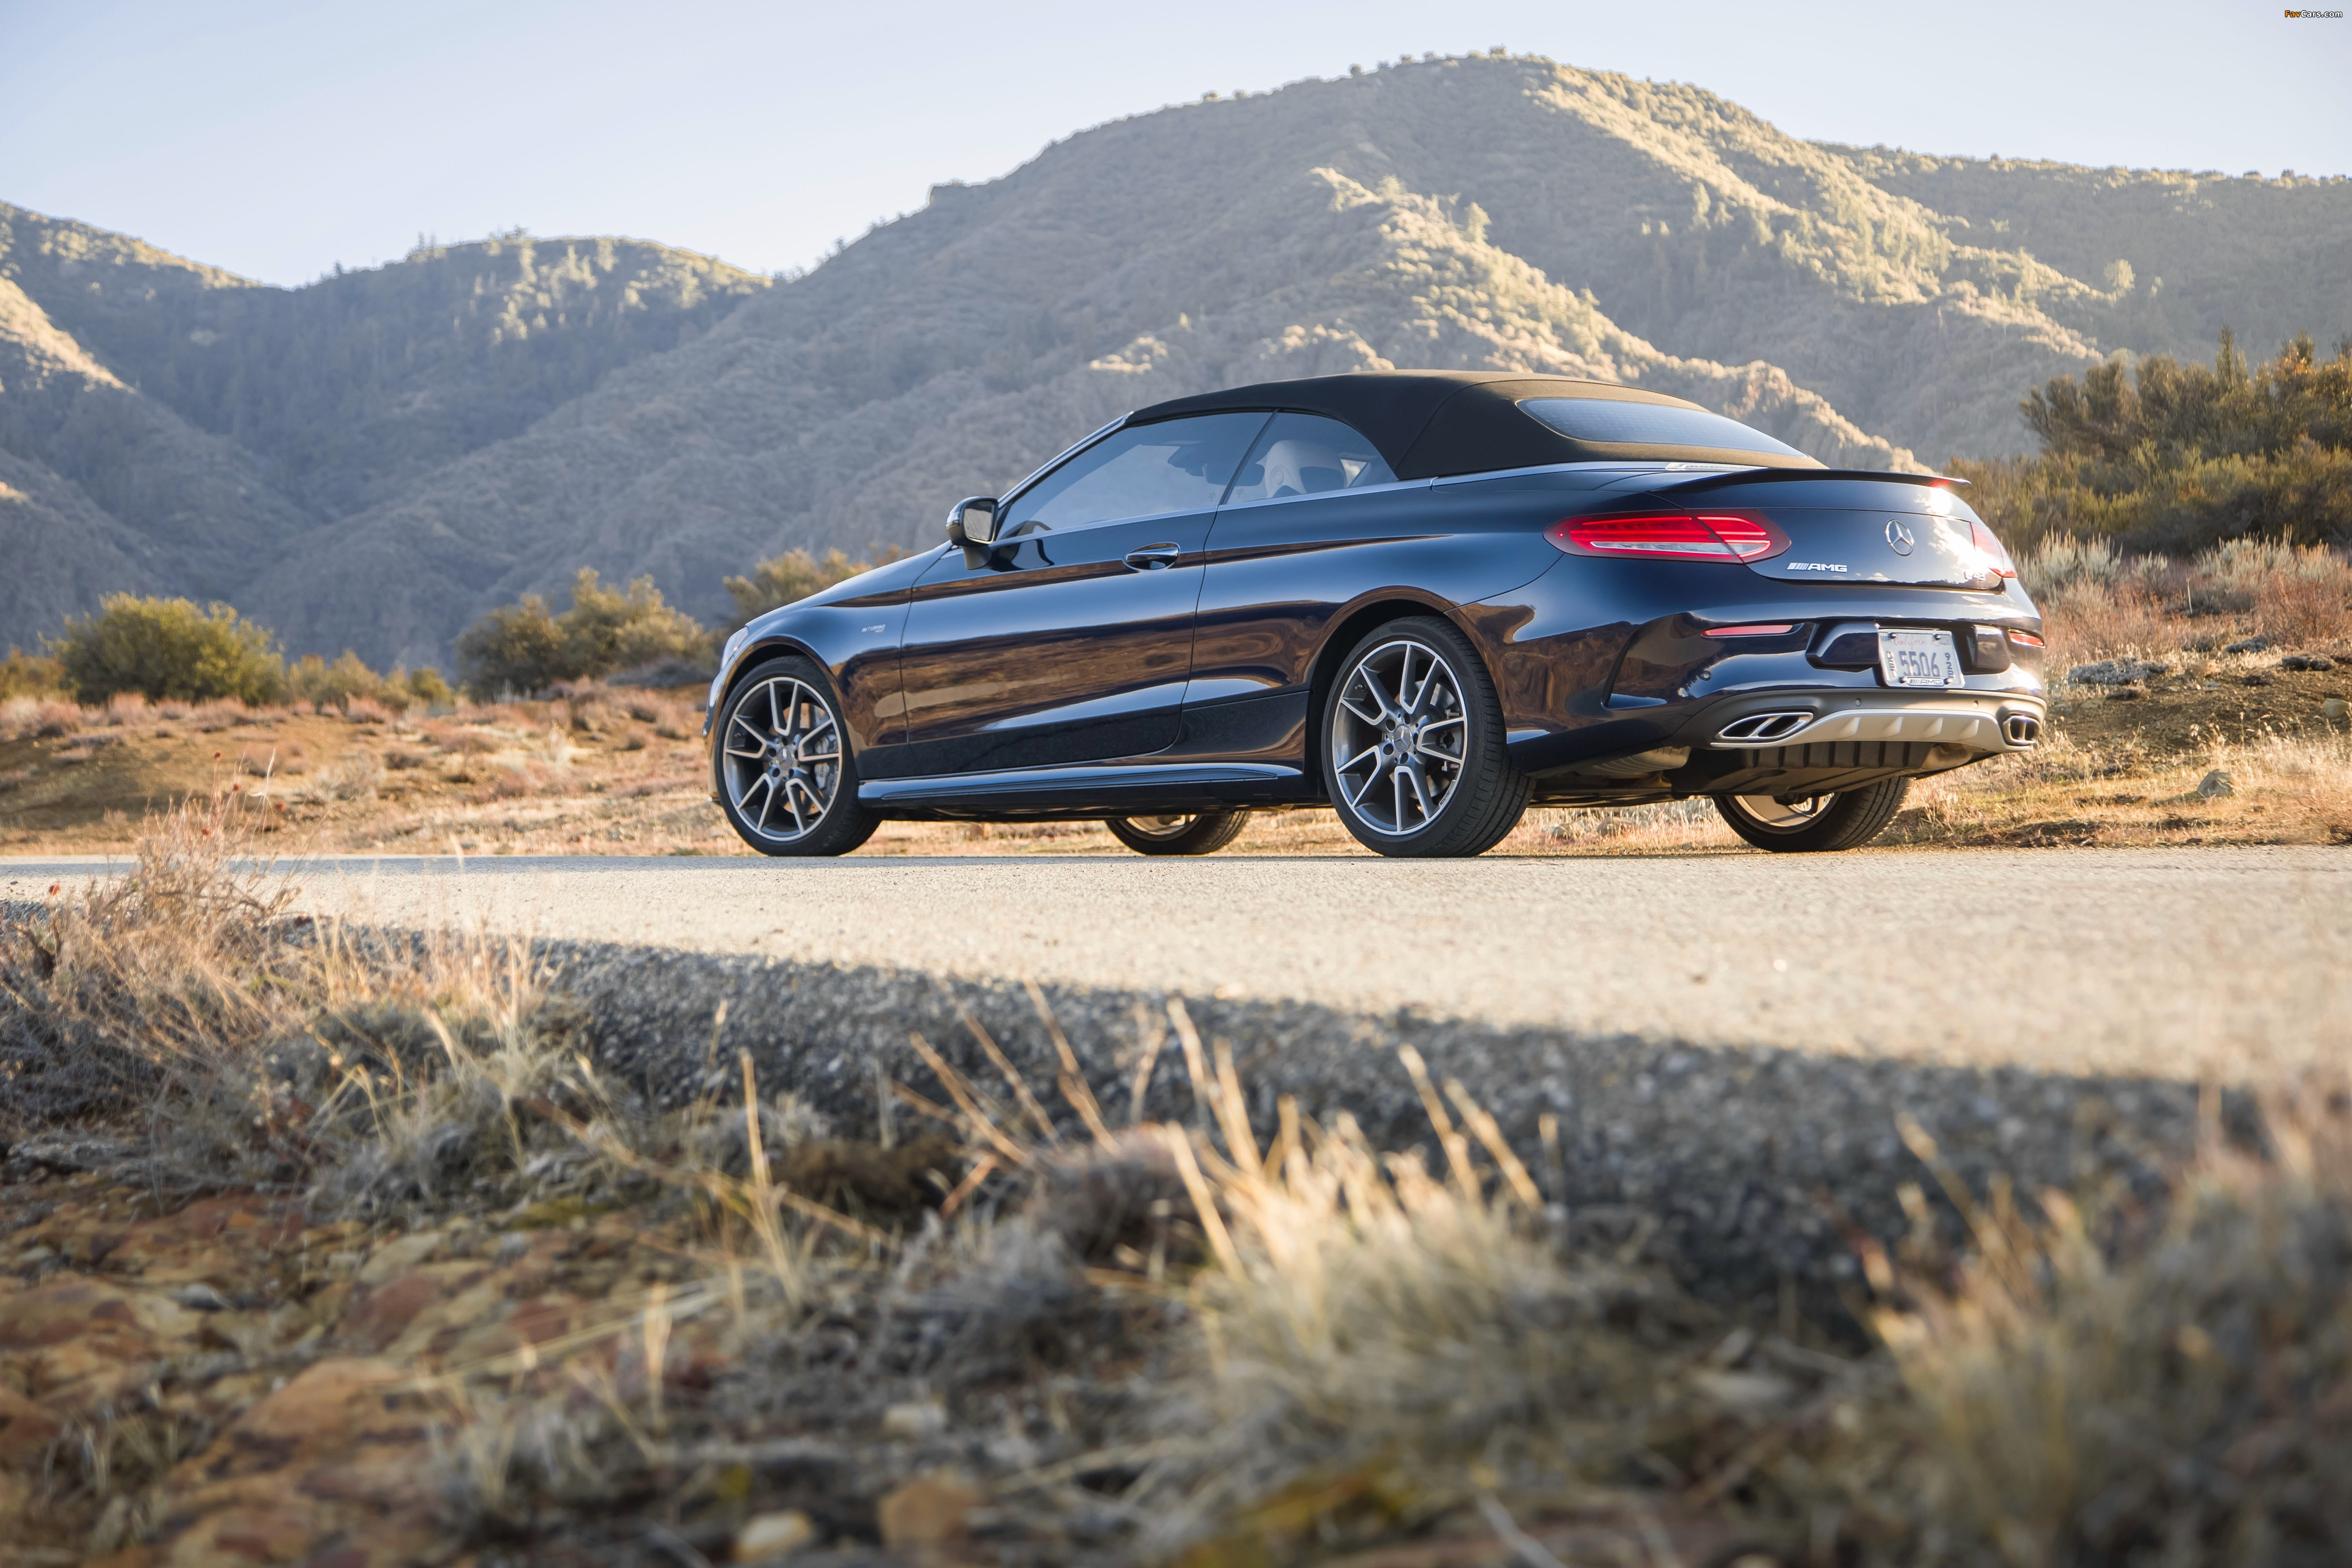 Mercedes-AMG C 43 4MATIC Cabriolet North America (A205) 2016 images (4096 x 2731)